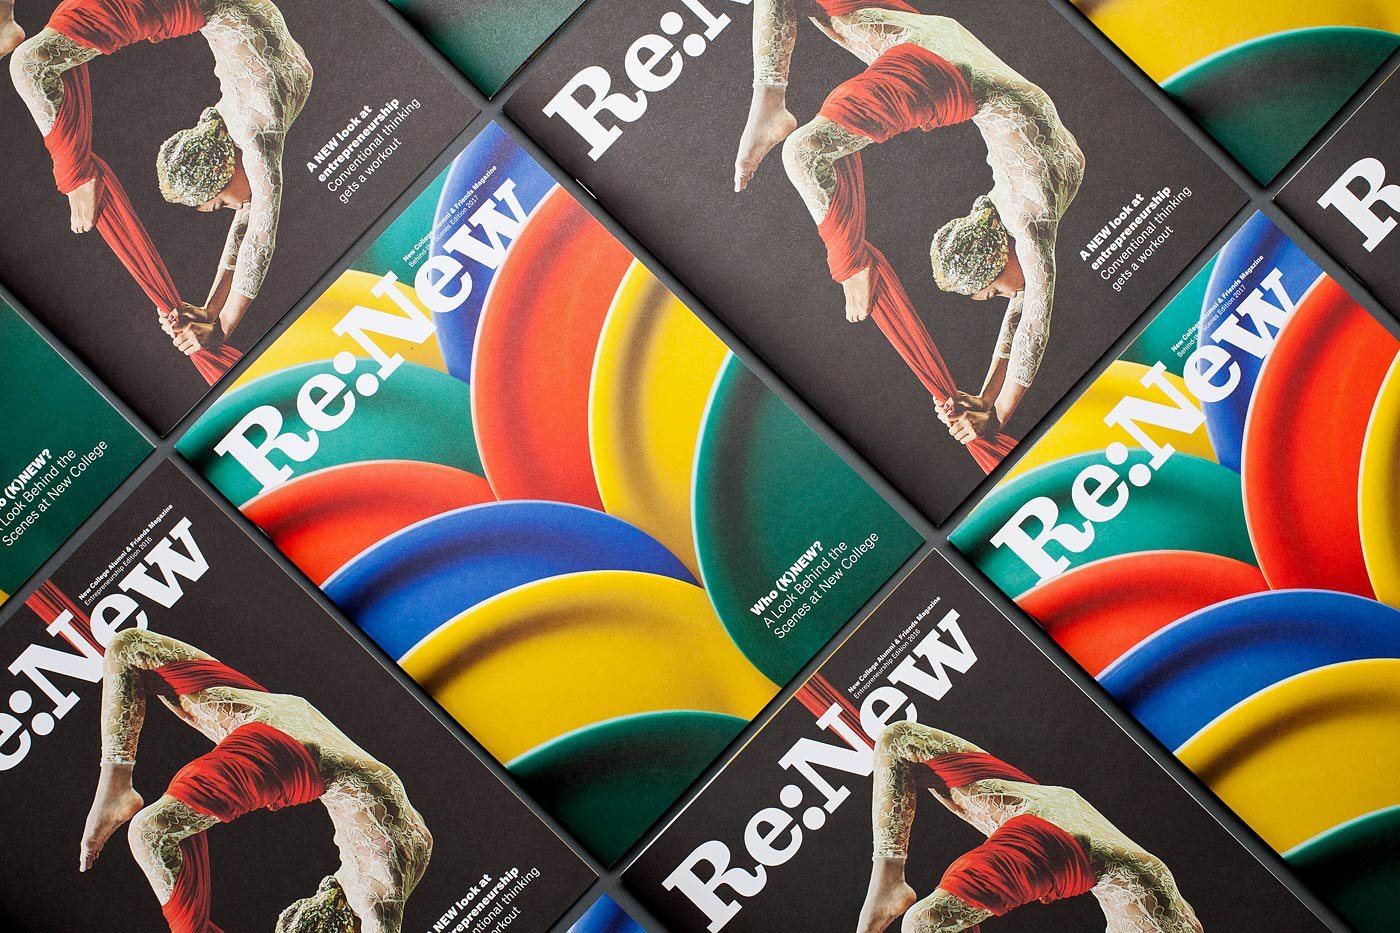 ReNew Magazine, 2016 and 2017 editions